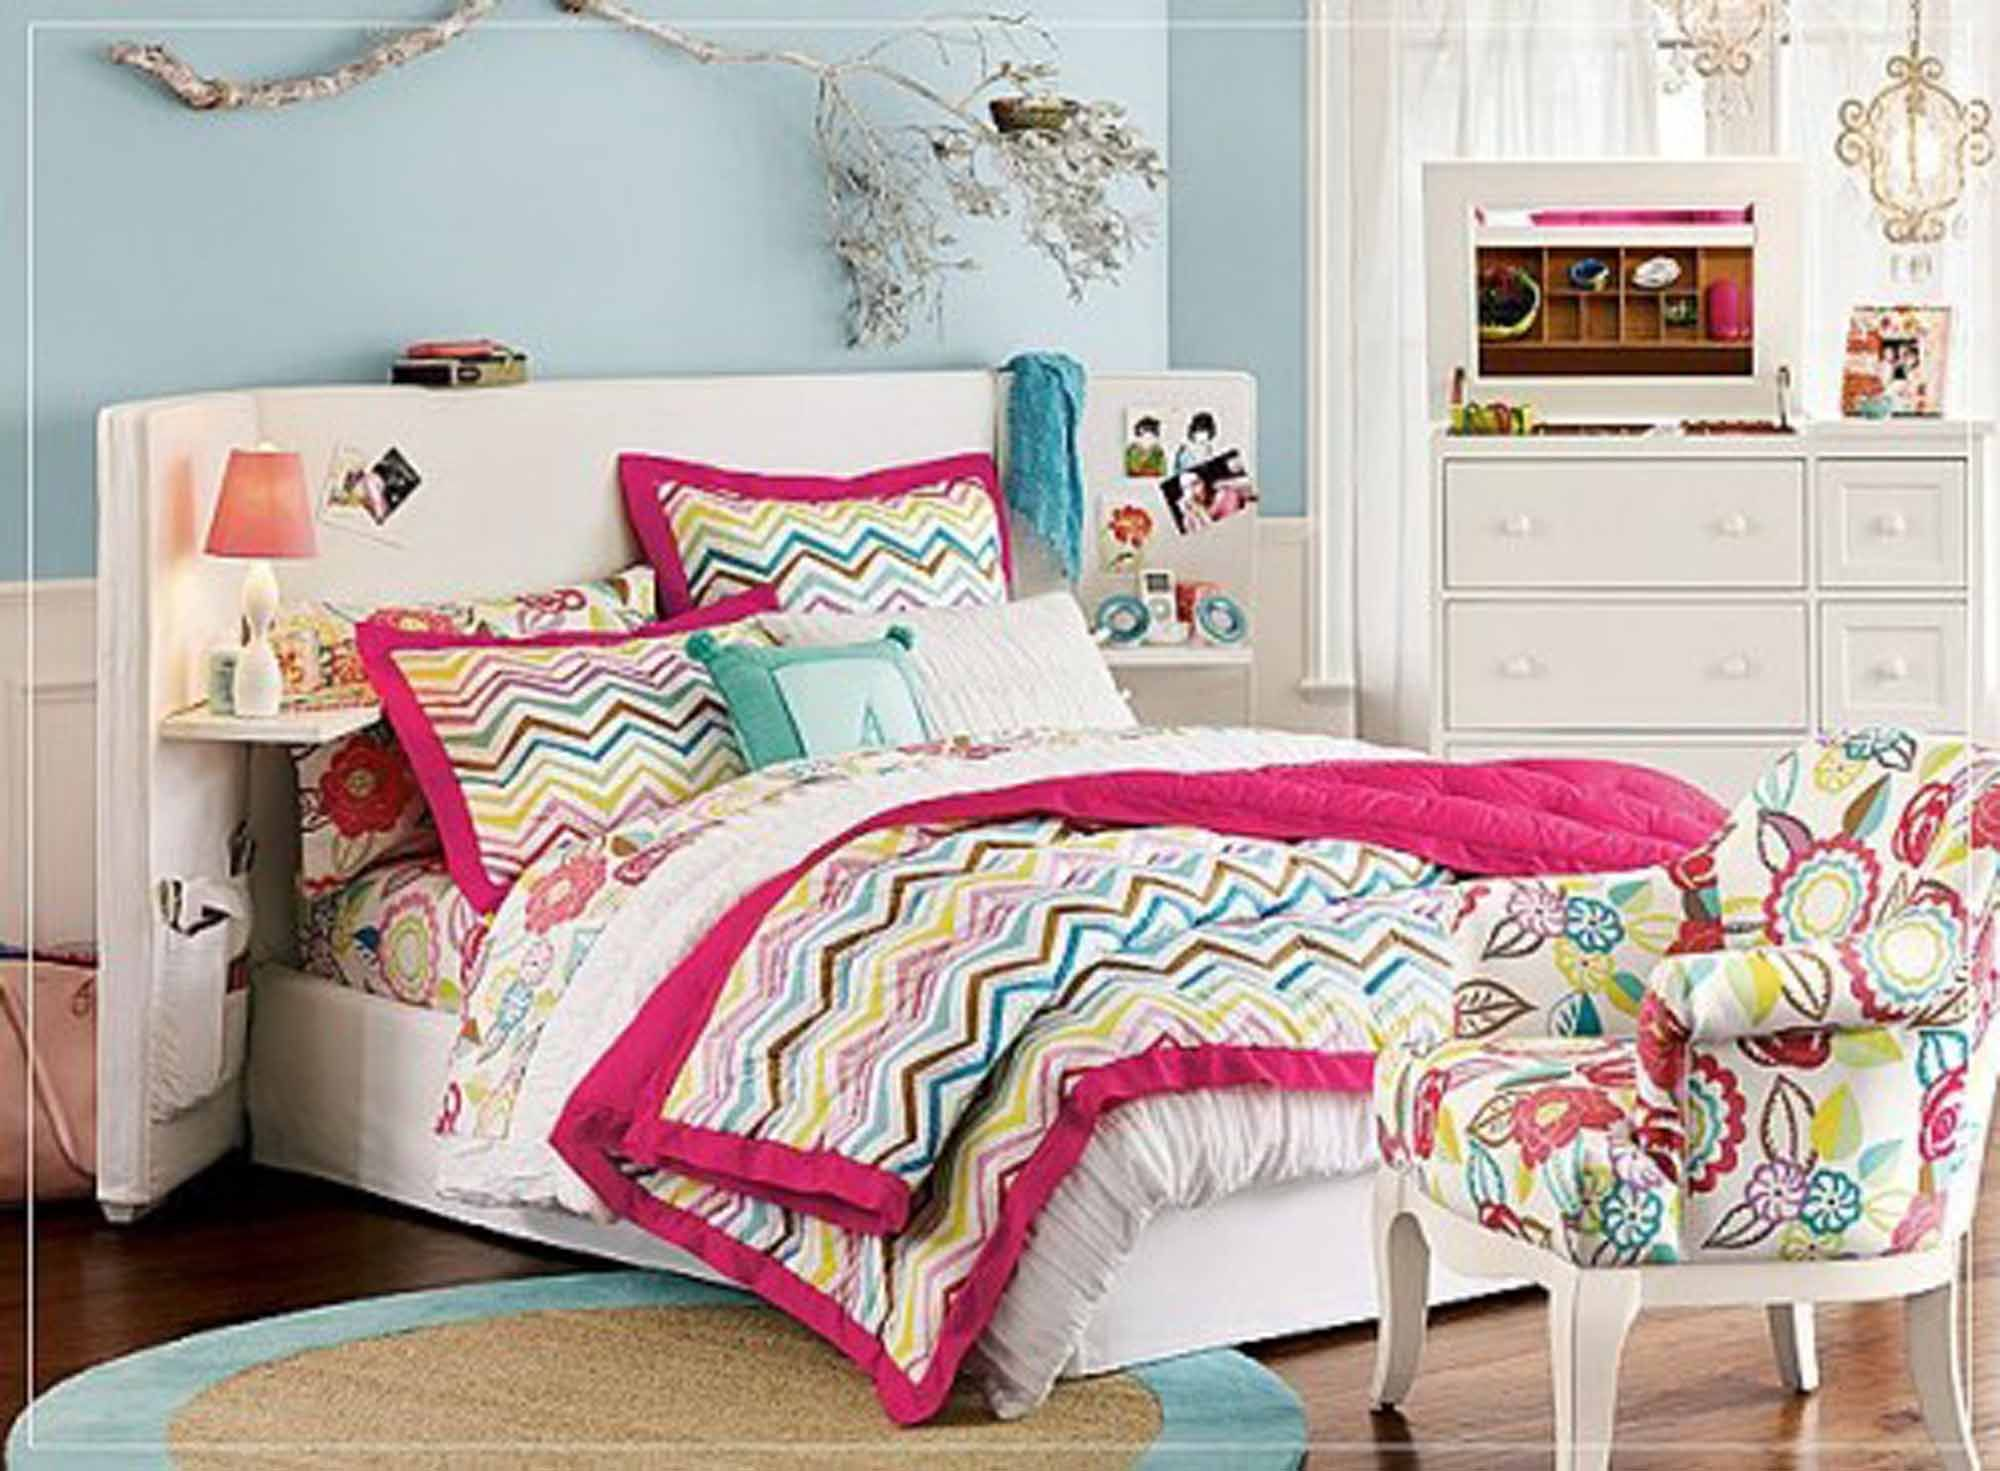 Queen beds for teenagers - Beautiful Teenage Girl Bedroom Decorating Idea With Queen Bed Frame And Floating Shelves And Colorful Chevron